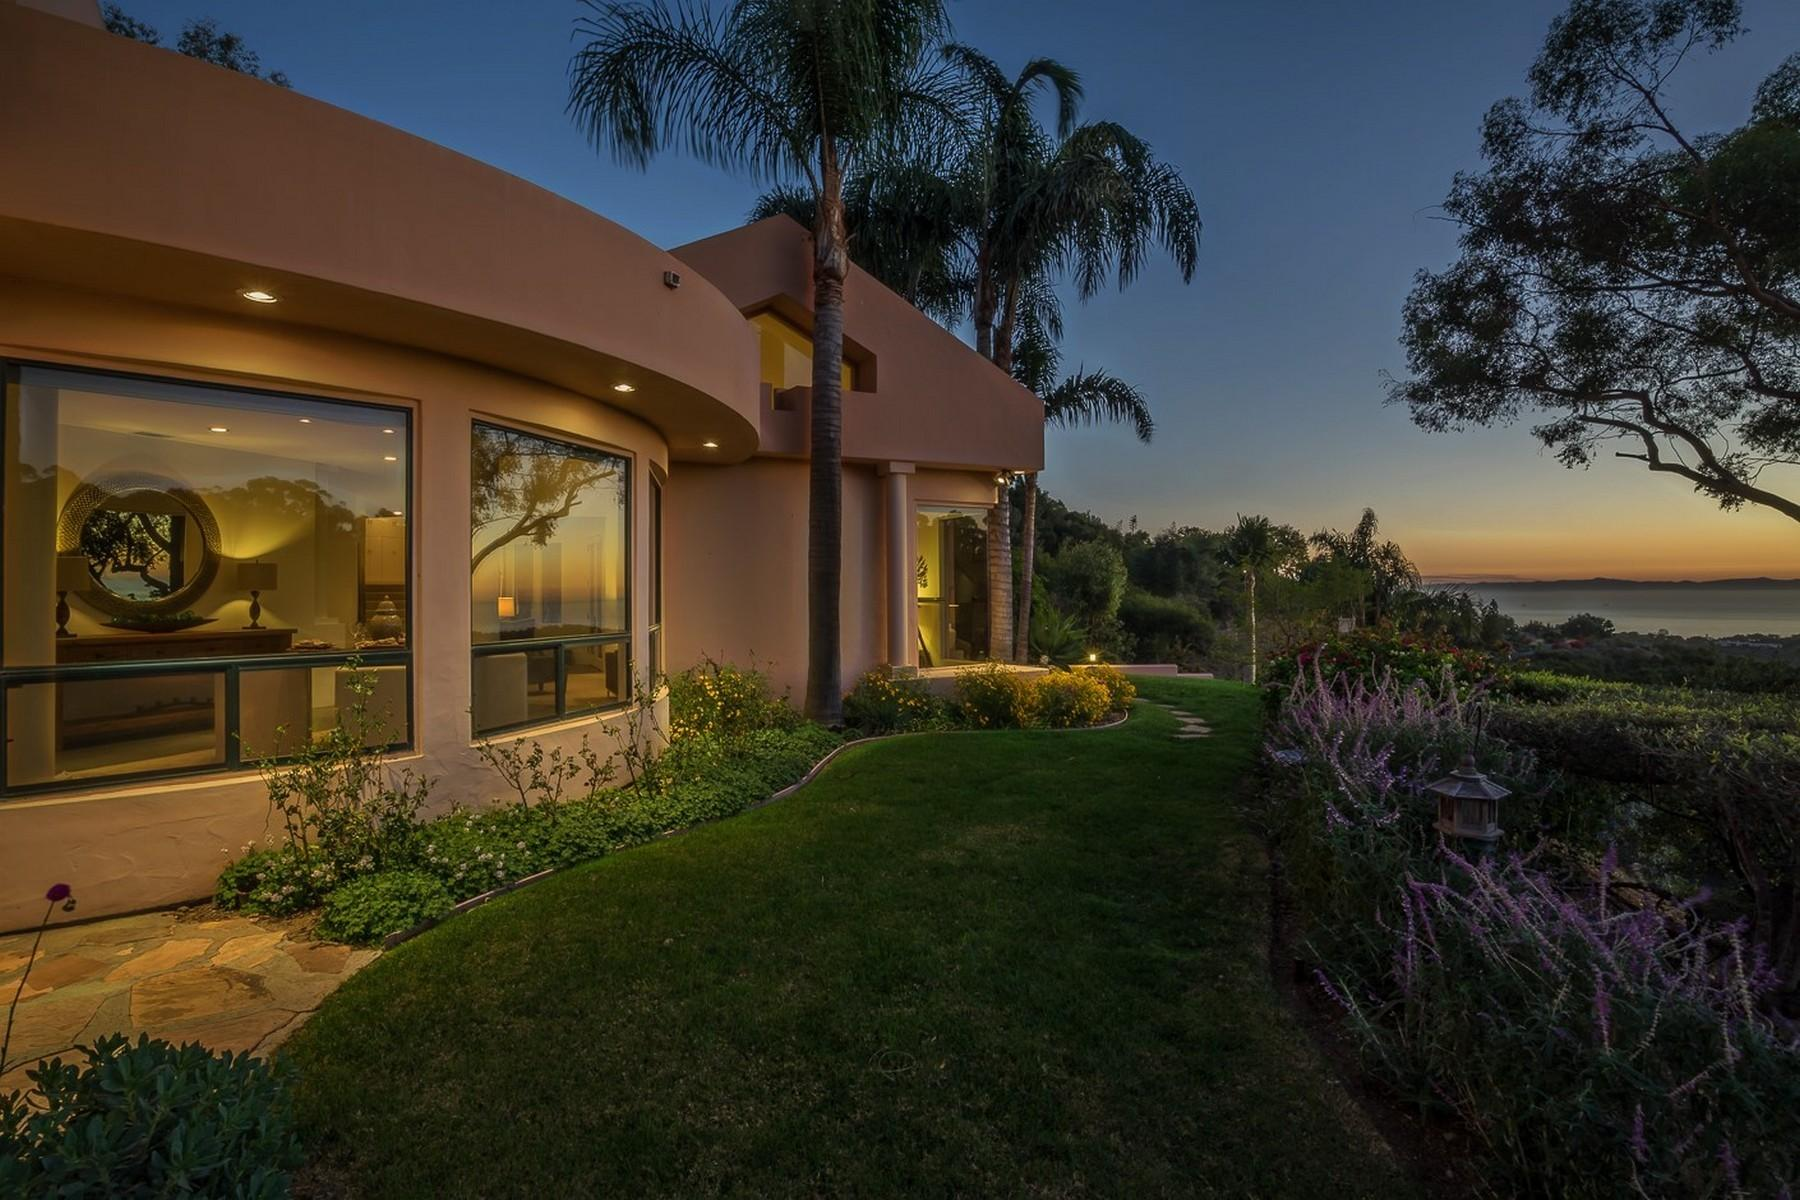 2891  Hidden Valley Ln, Santa Barbara, California